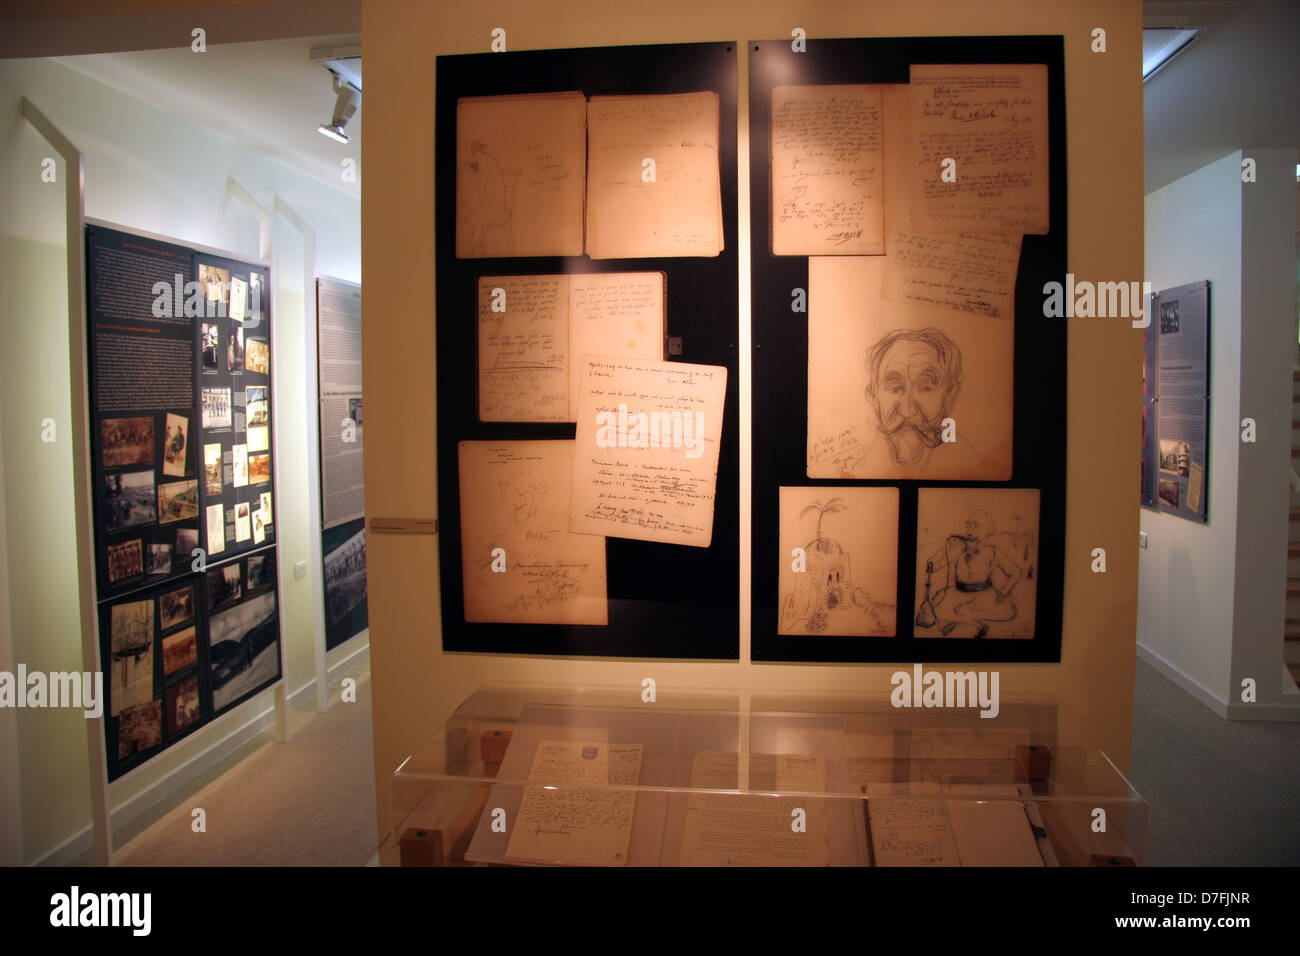 Archives of the German speaking Jewry museum at the Jekke Heritage center, Tefen - Stock Image